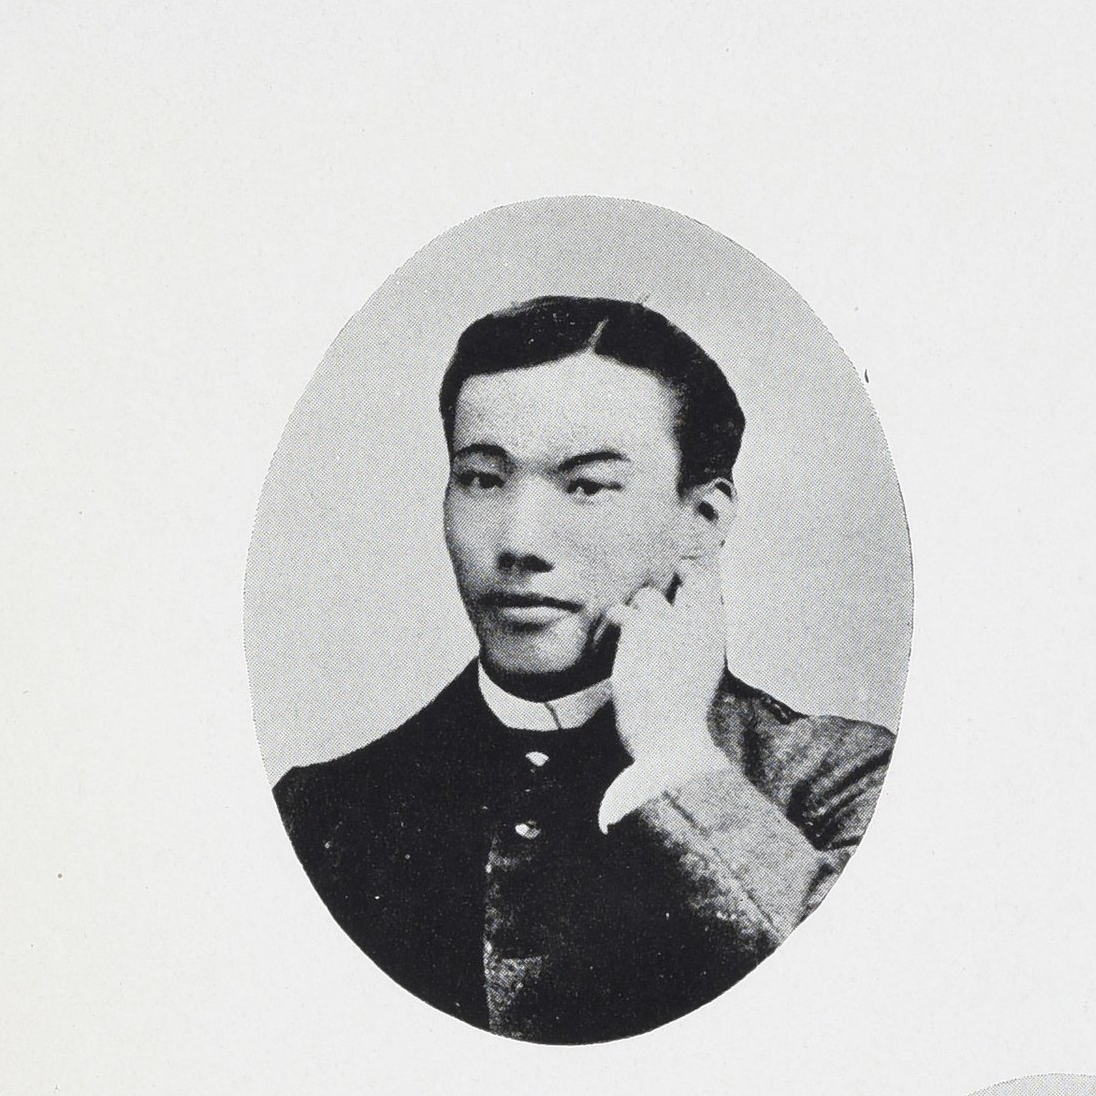 KY Kwong,  Class of '84 MIT: Twenty-fifth Anniversary Book , 1909. Courtesy MIT Archives and Special Collections.